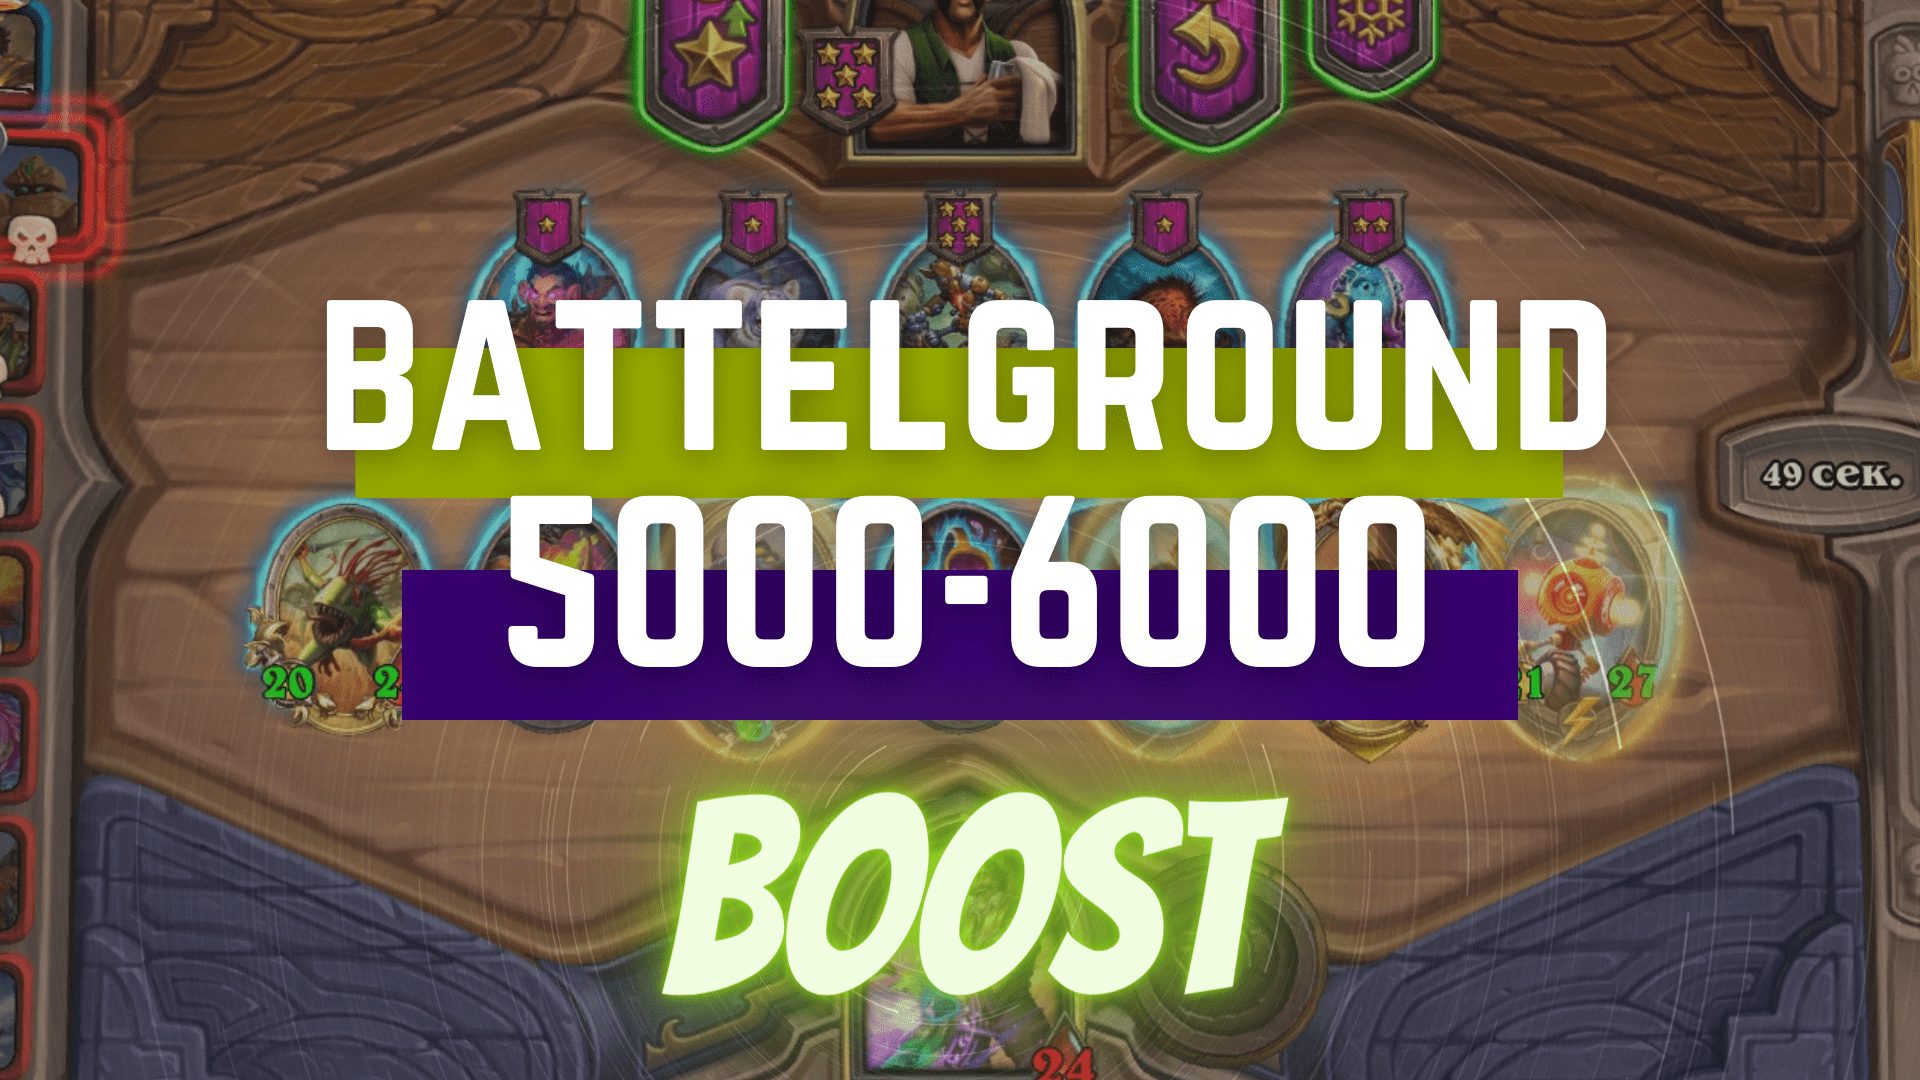 [Battlegrounds rating] Boost from 5000 to 6000 Zafari - e2p.com